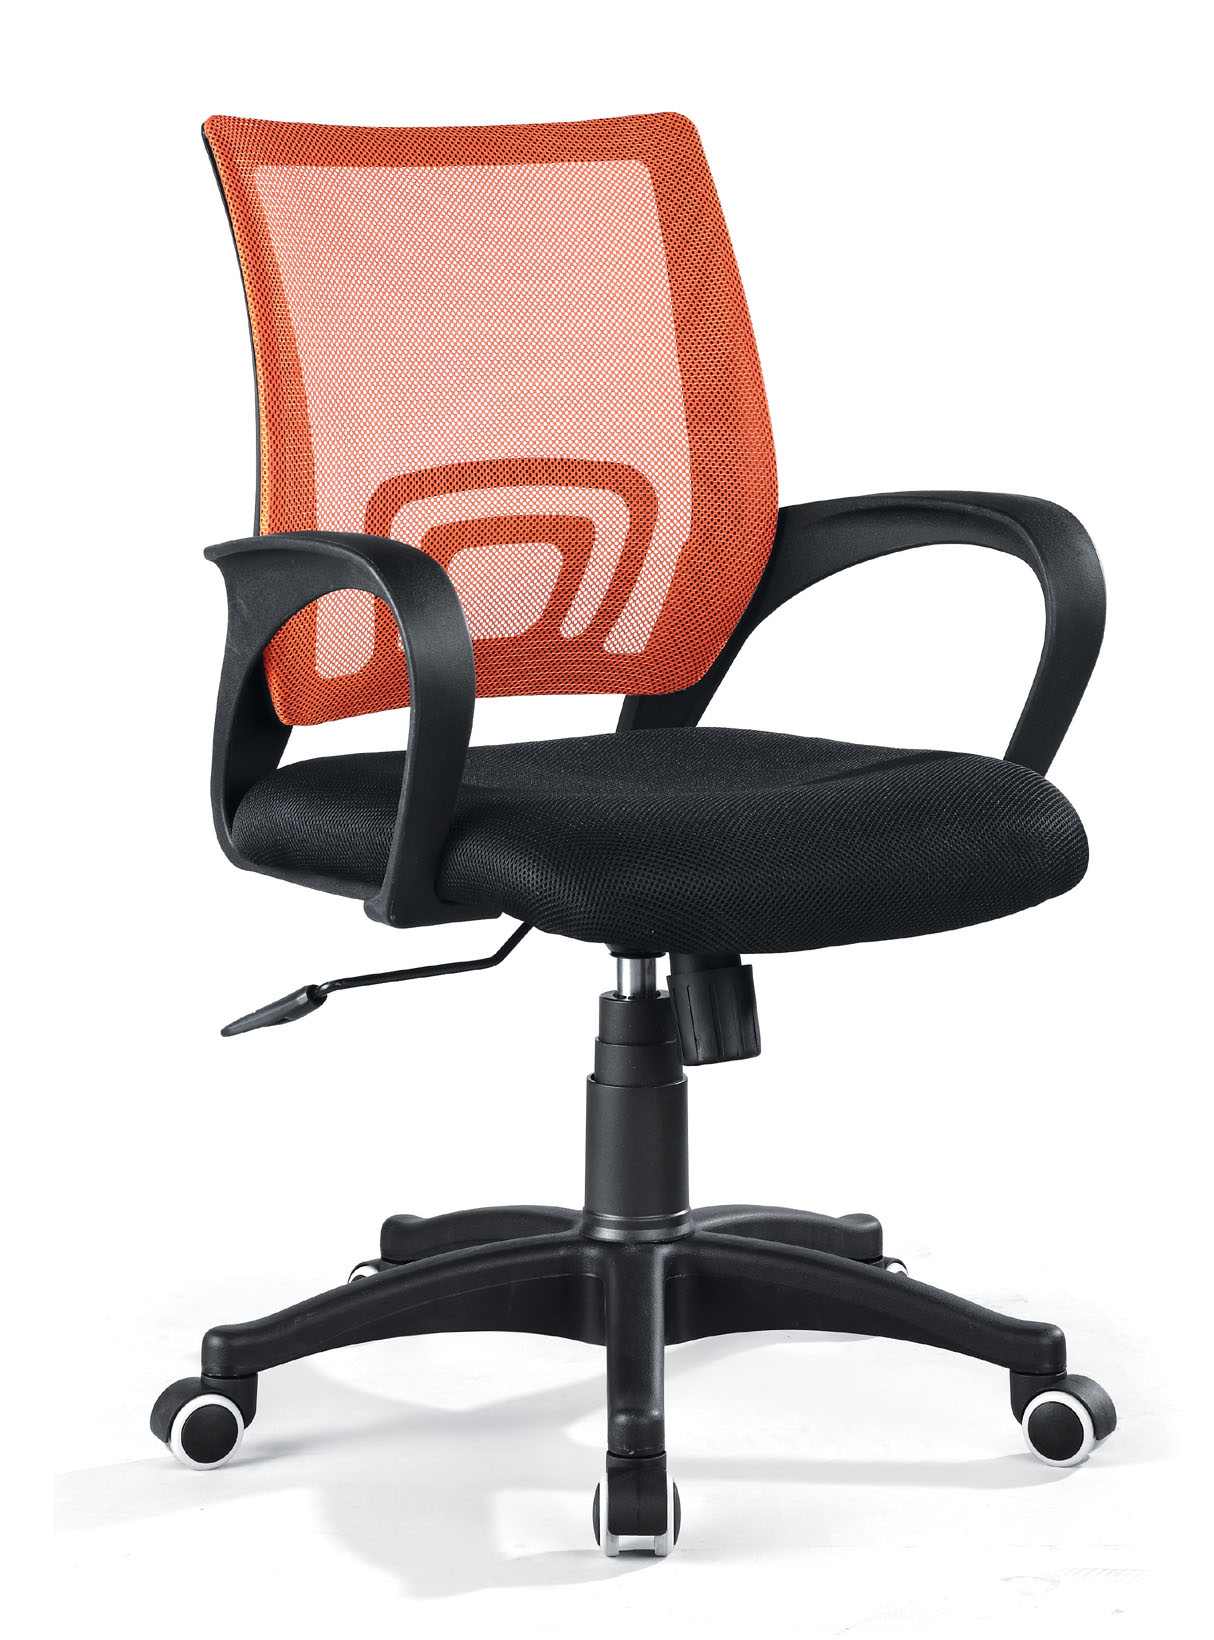 Colored Office Chairs Buy Zhsmc 06 Swivel Office Chair With Curved Mesh Backrest